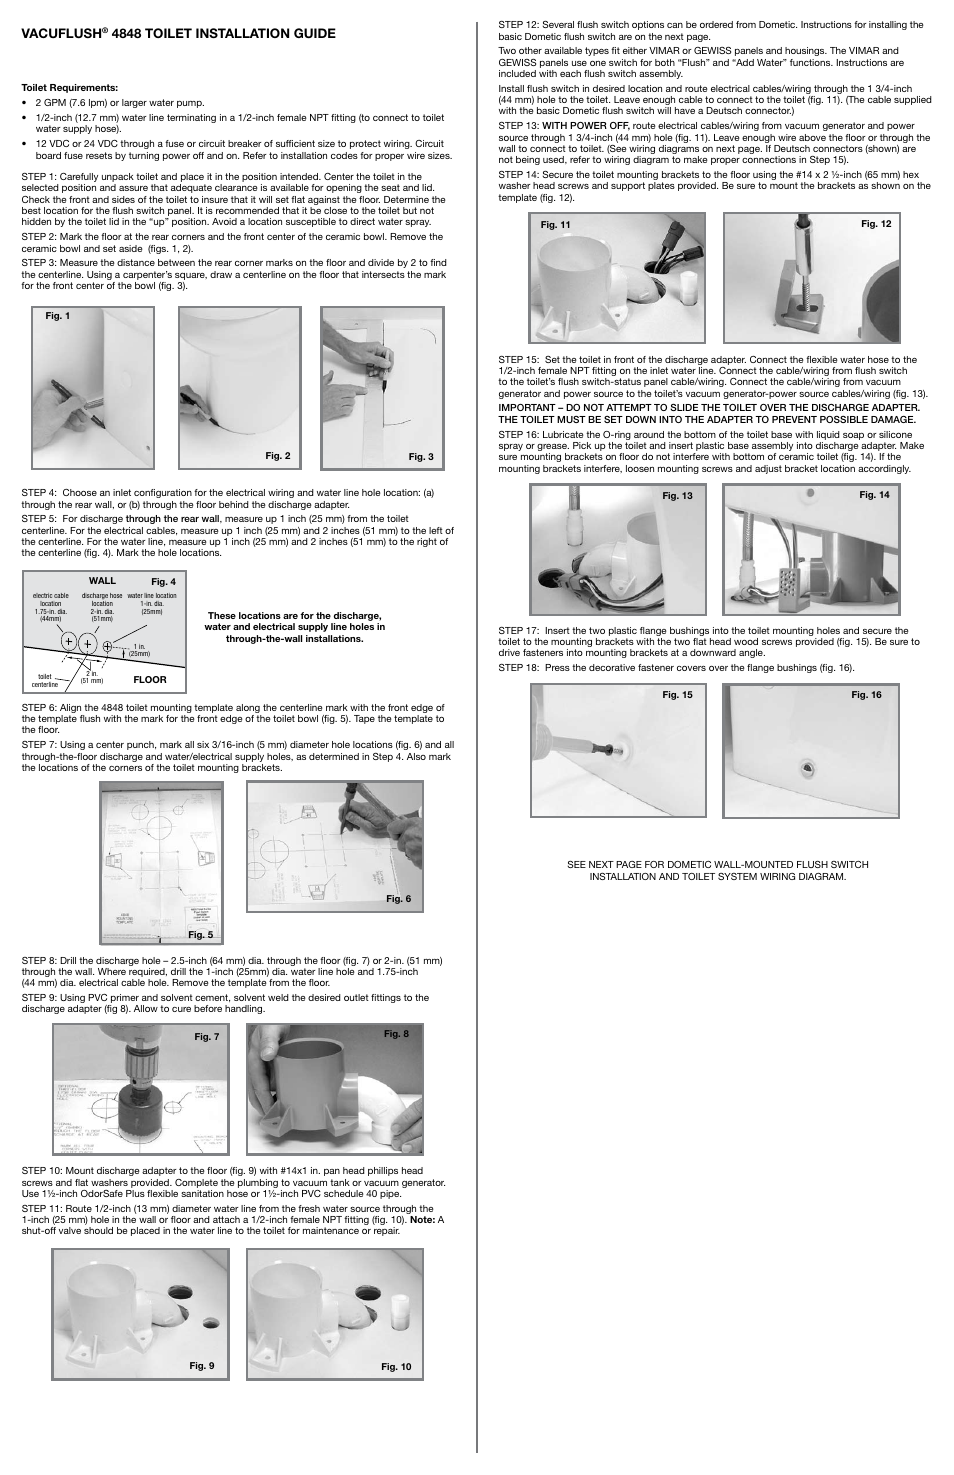 Sealand Vacuflush Toilet Page on Basic Electrical Wiring Diagrams